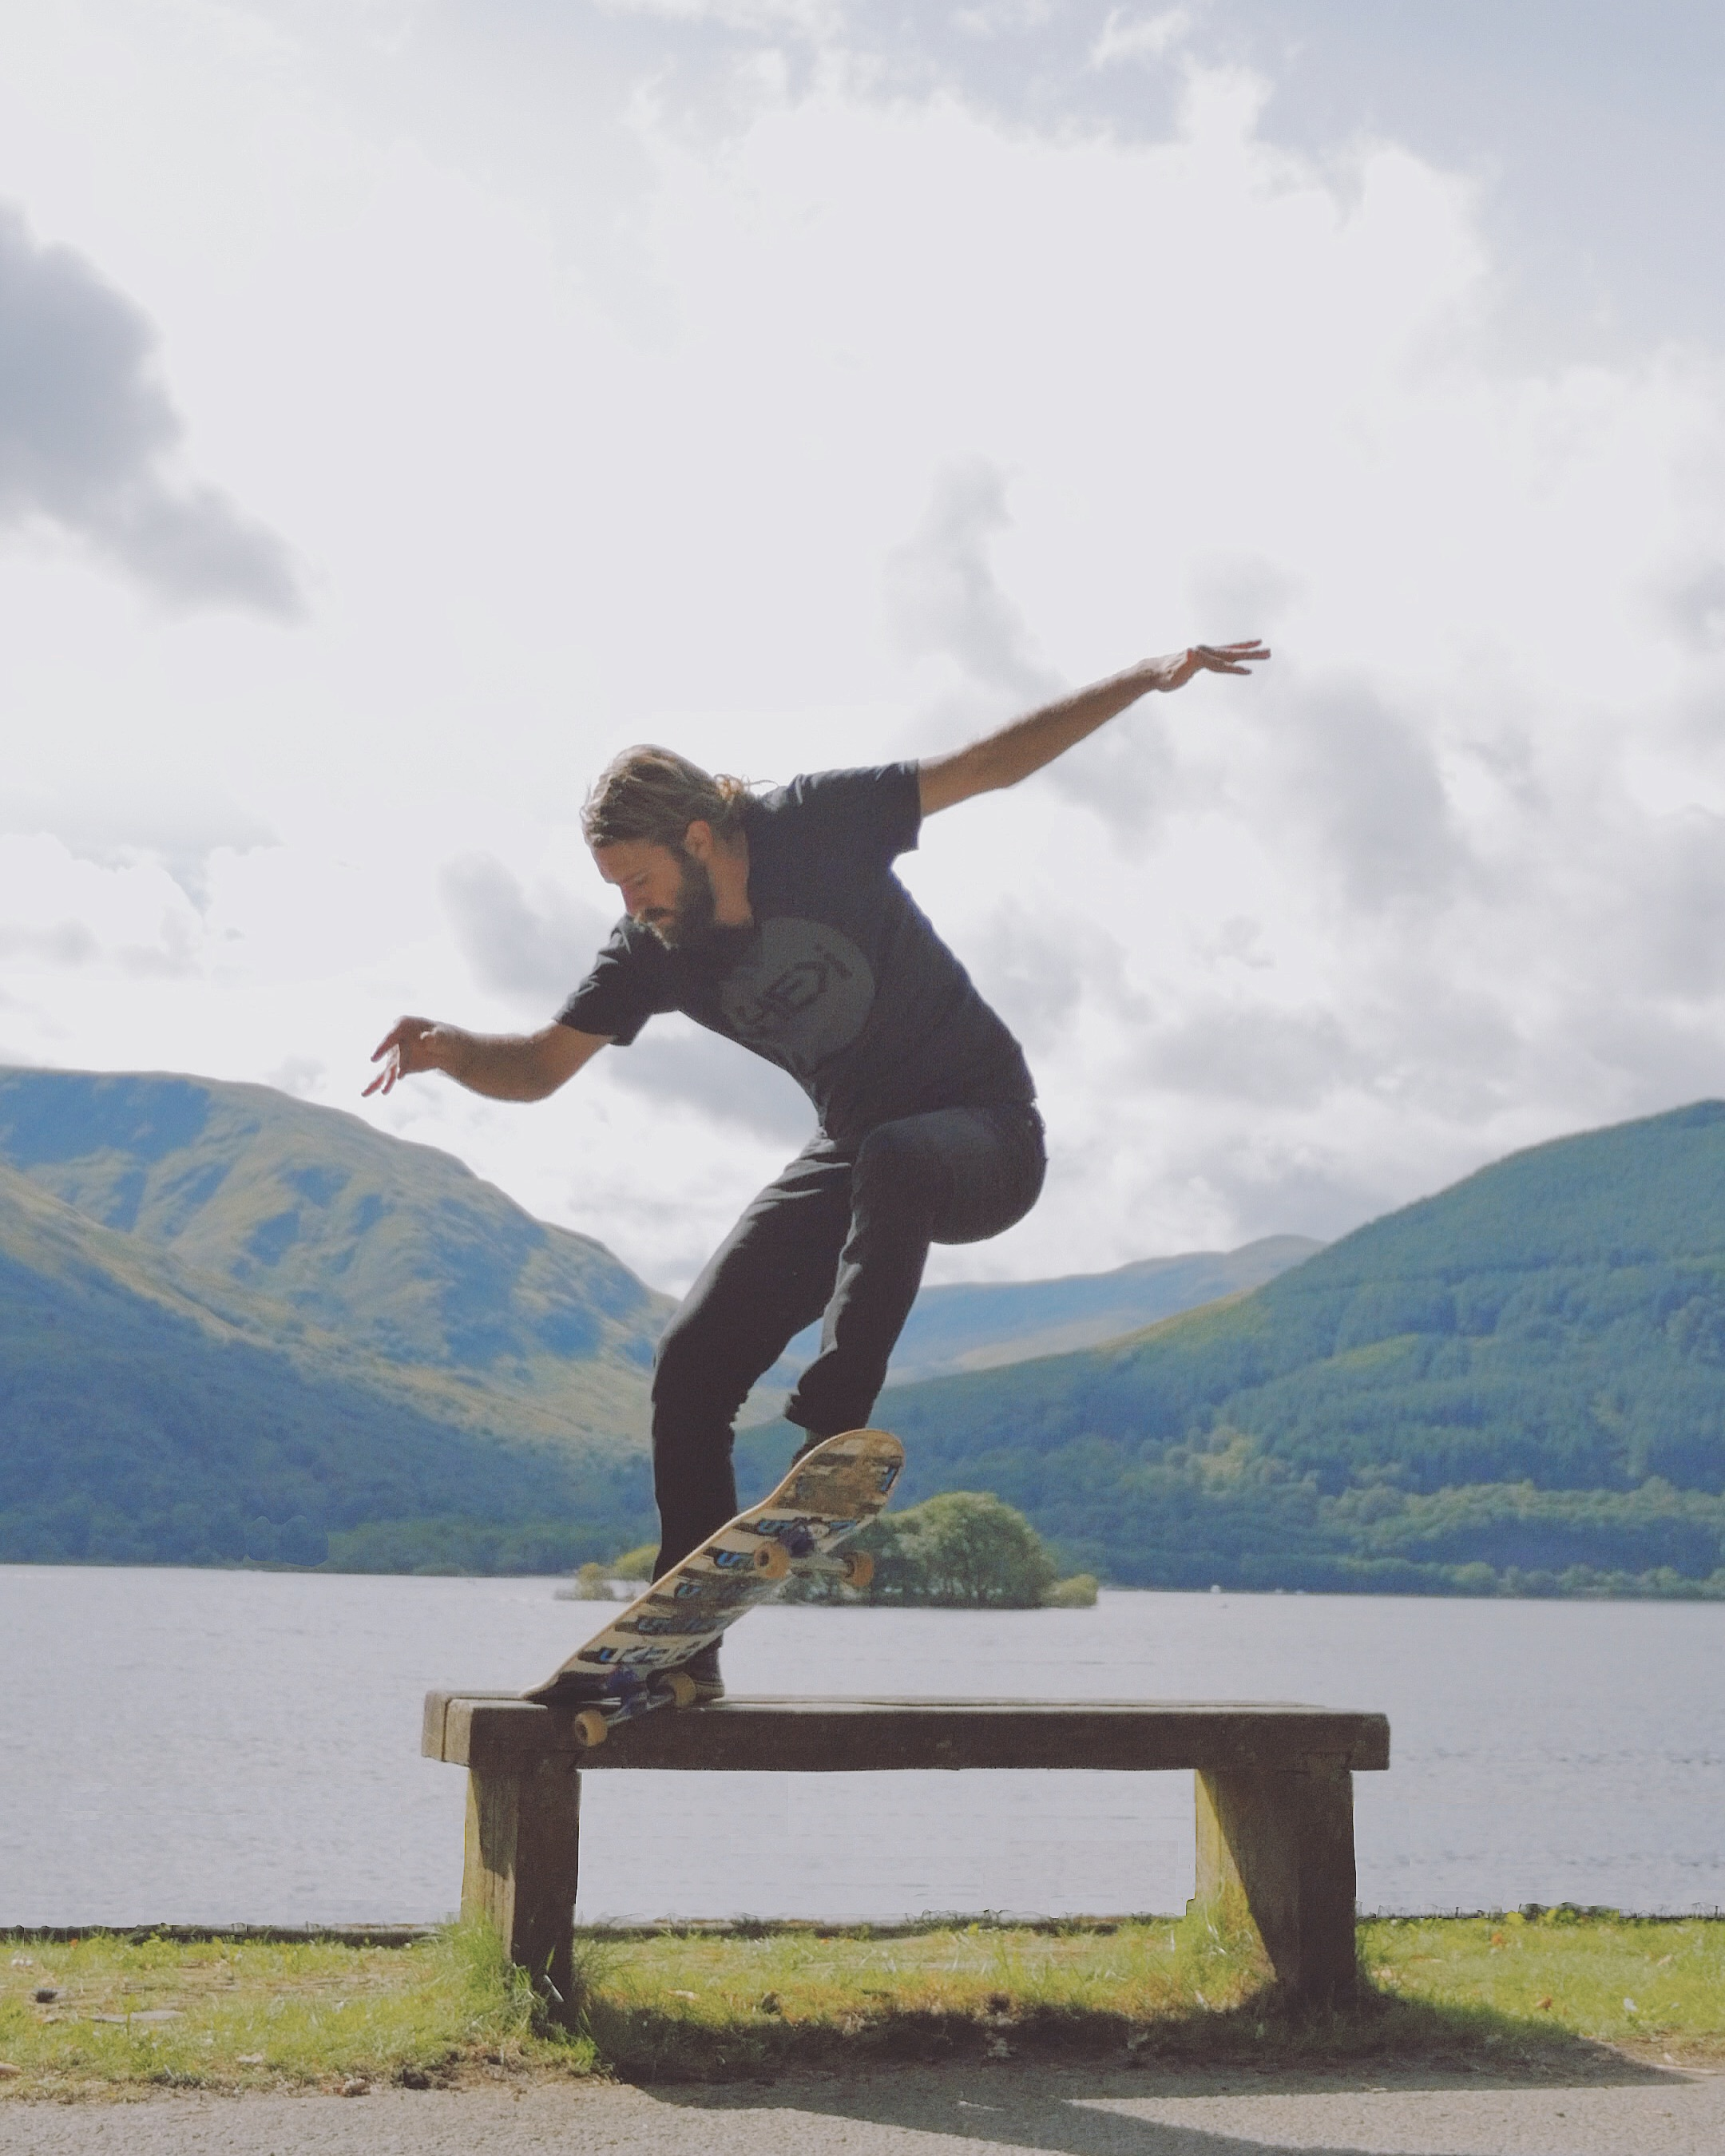 crook crooked grind loch lomond scotland mountains nature